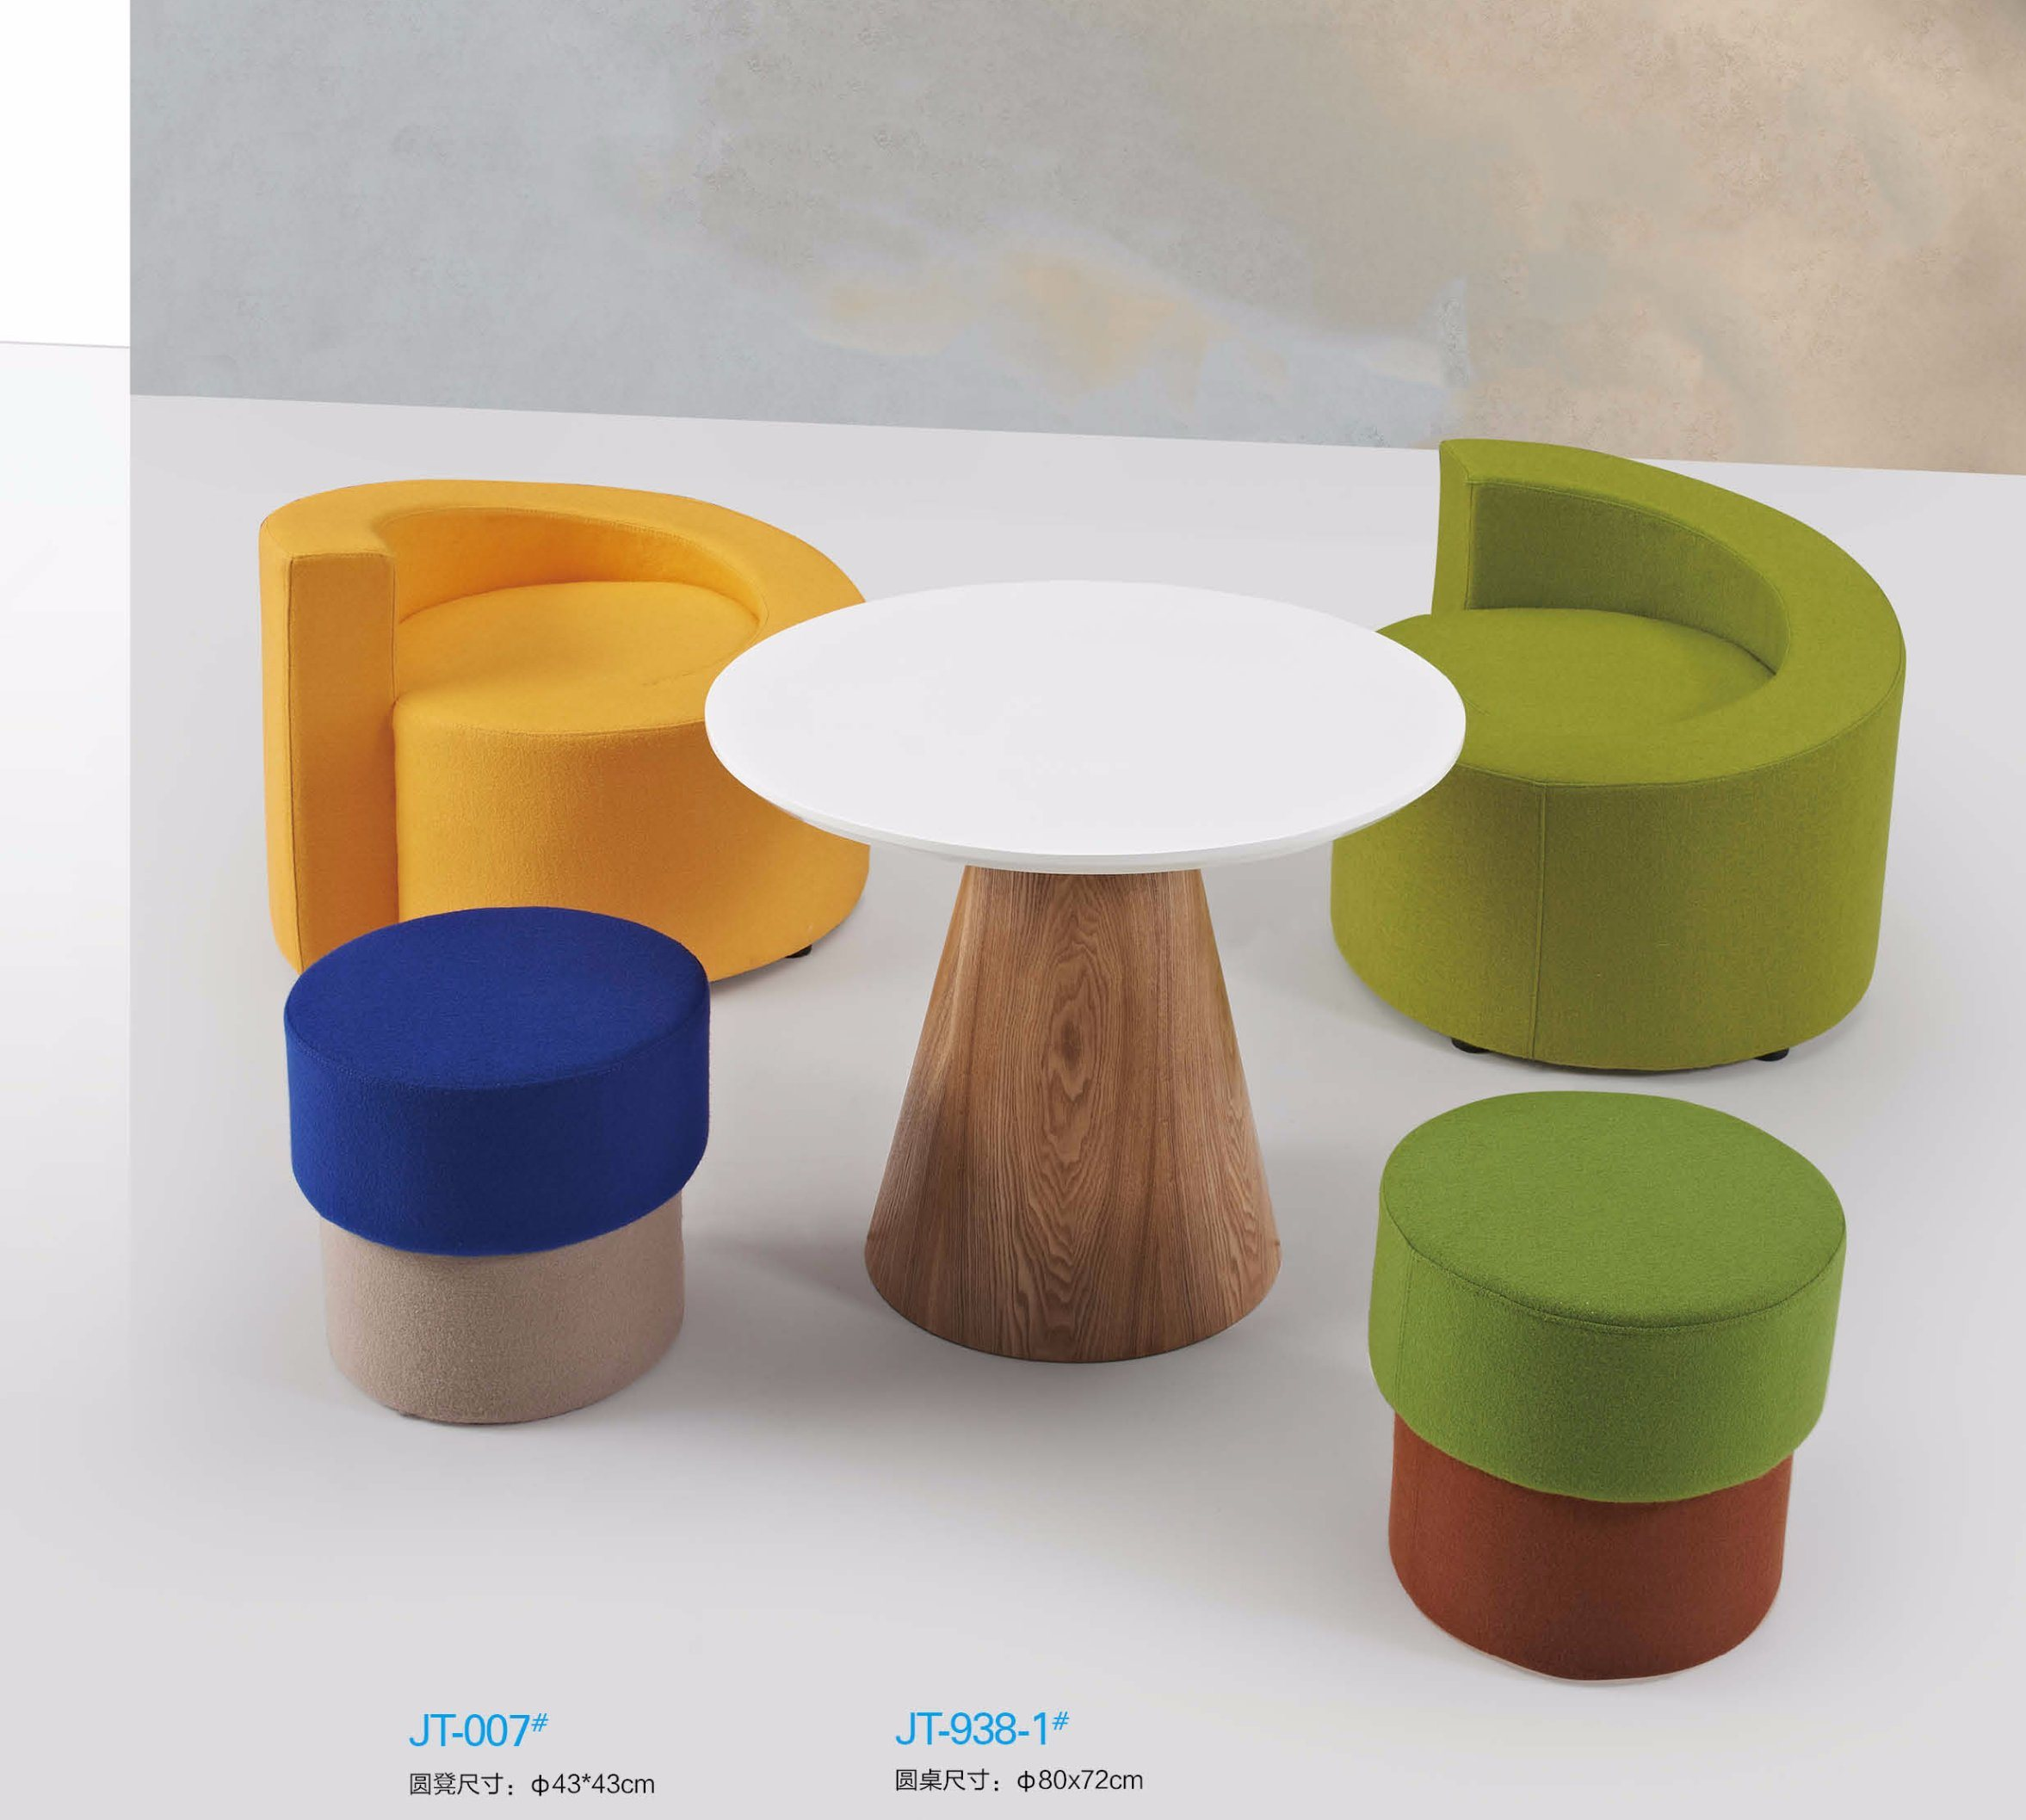 China children baby furniture fabric stool bedroom kids chair with table china children furniture baby chair